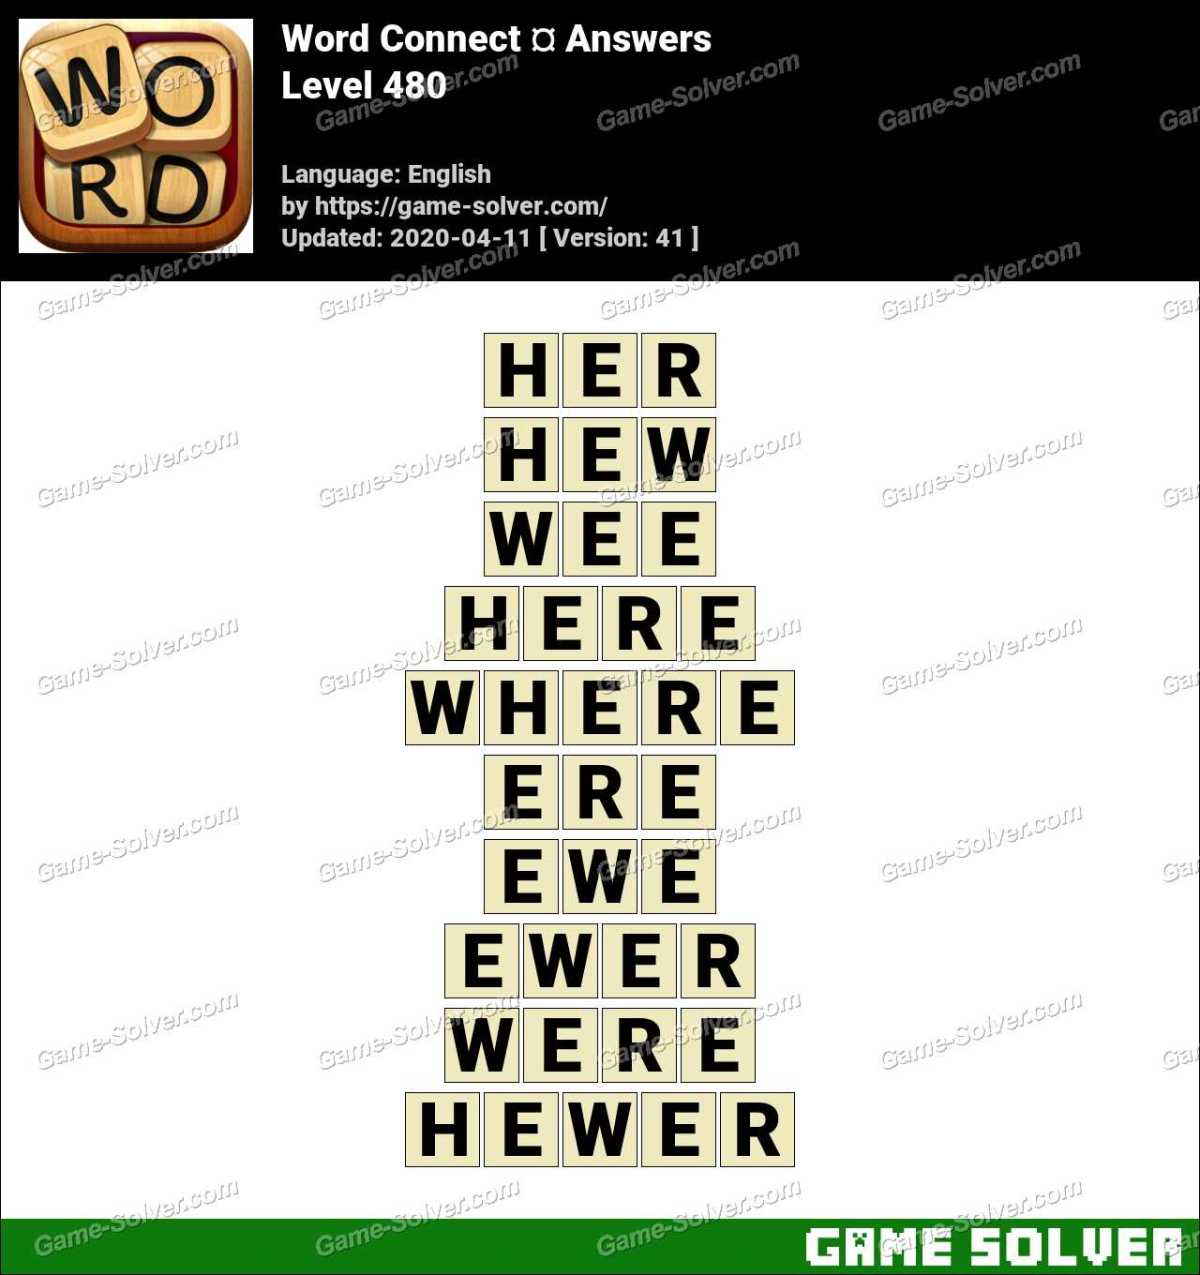 Word Connect Level 480 Answers